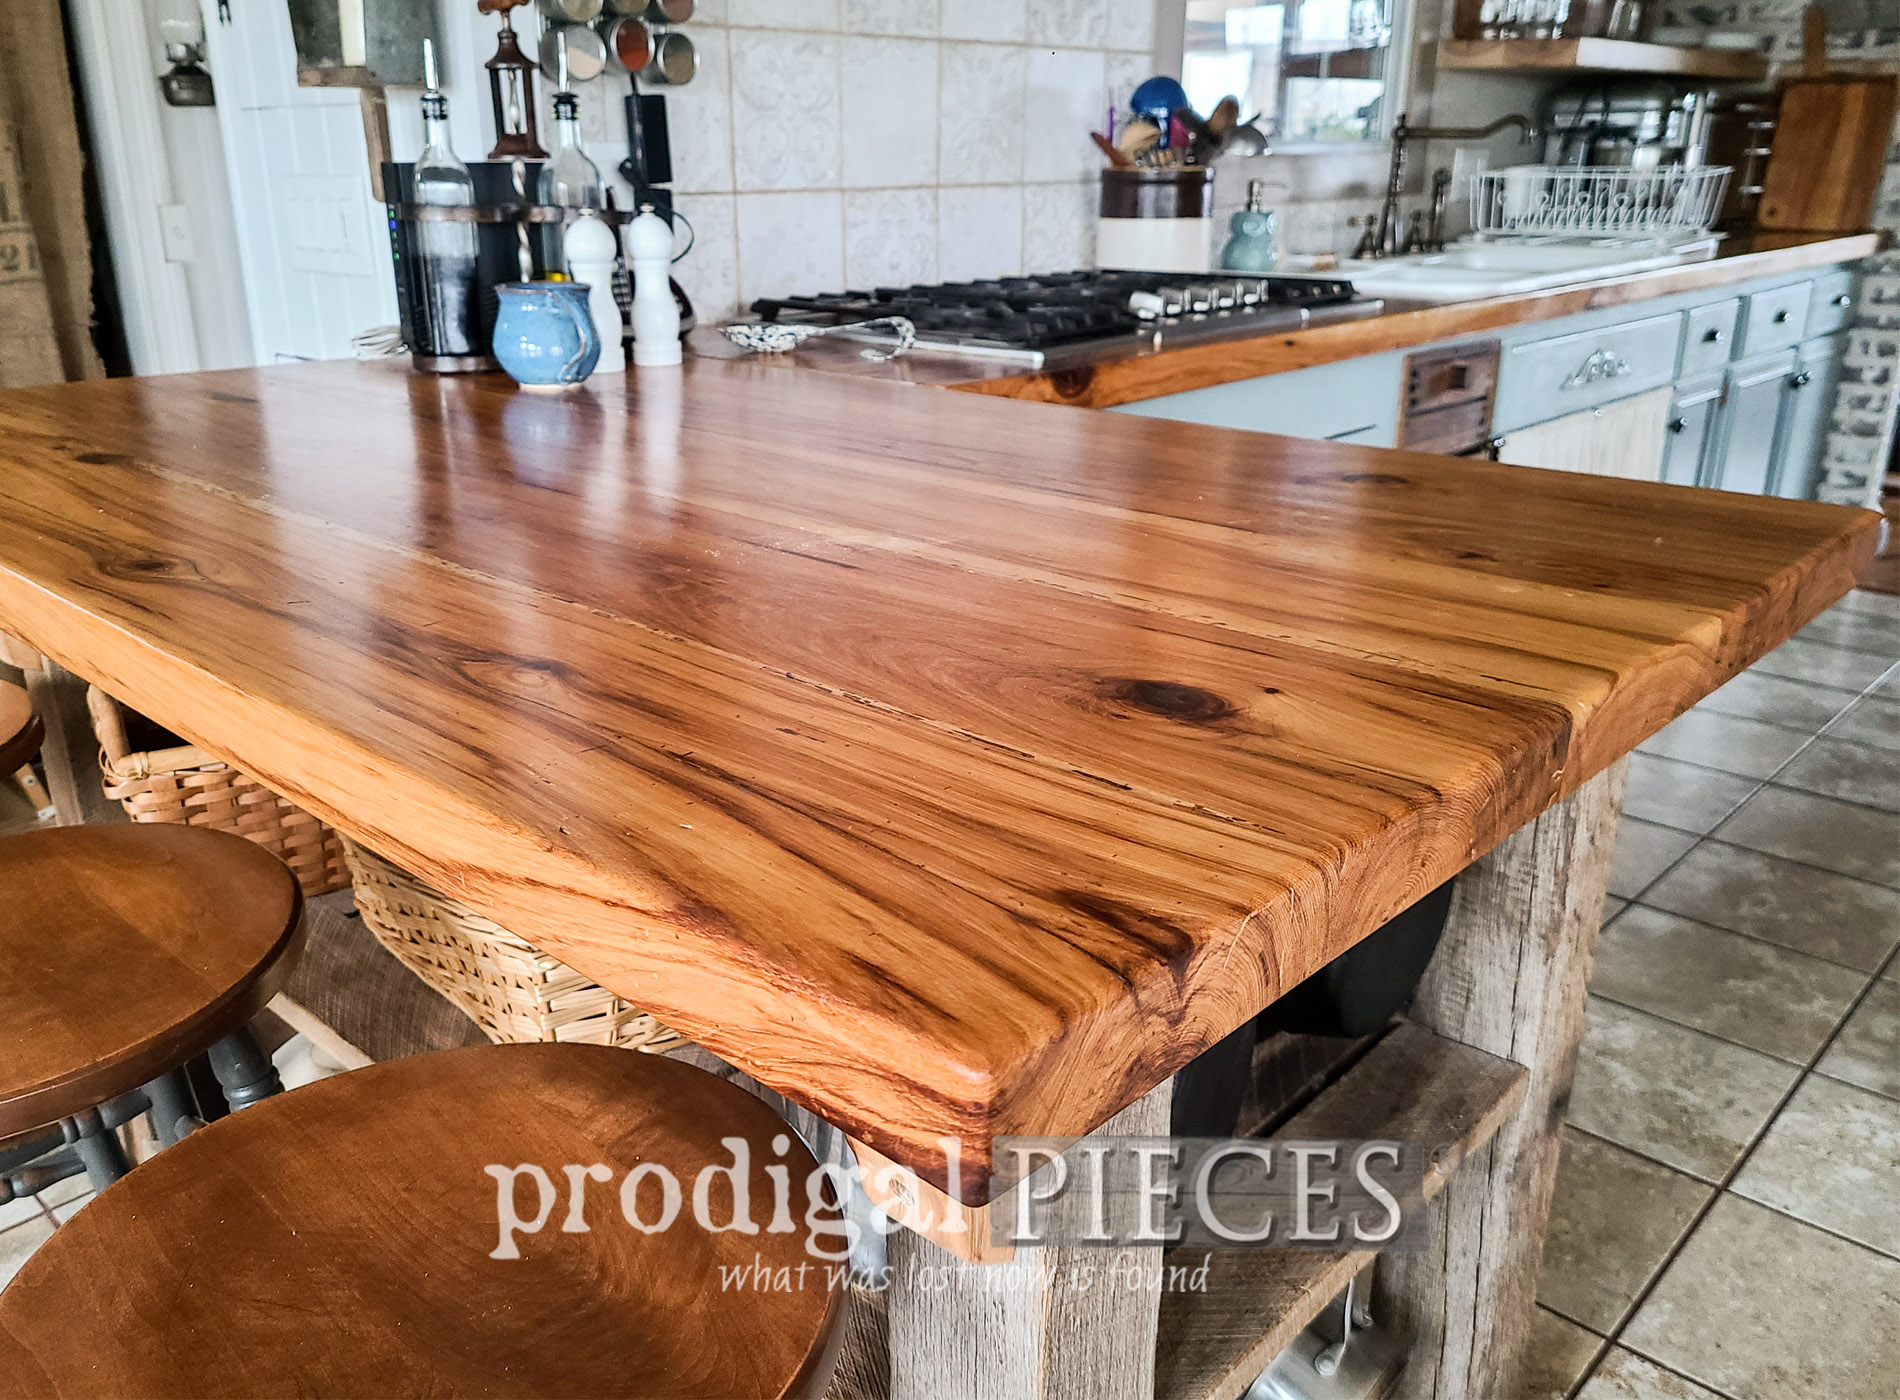 Featured Wood Kitchen Counters and How to Finish by Larissa of Prodigal Pieces | prodigalpieces.com #prodigalpieces #diy #kitchen #farmhouse #home